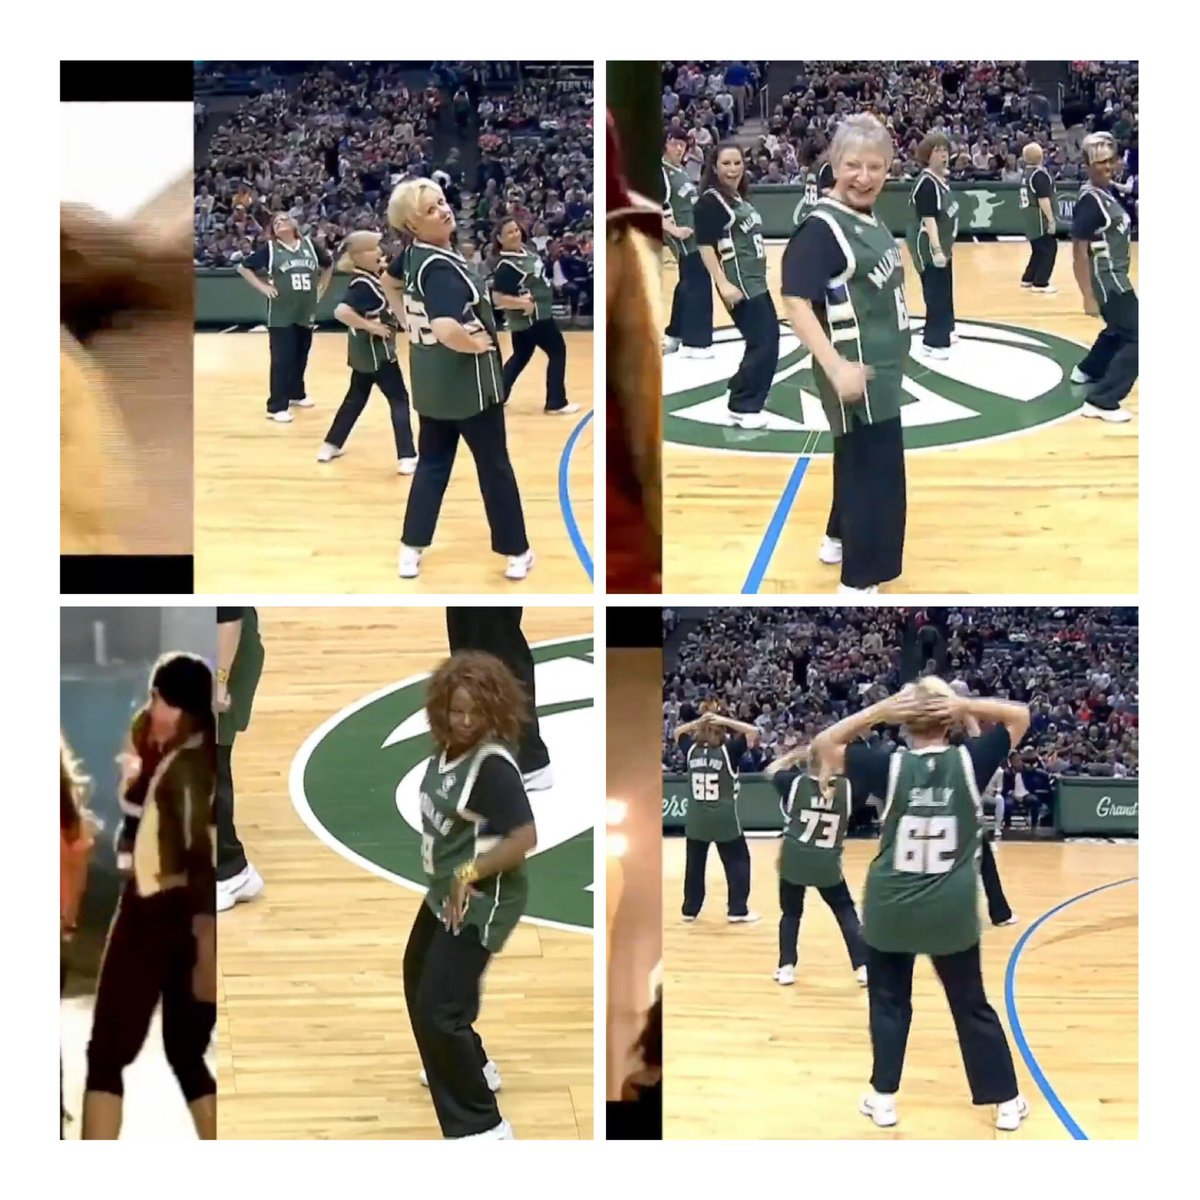 @nuggets fans, it looks like COVID budget cuts have now made it to @Bucks halftime shows #NBA What did I just watch?...